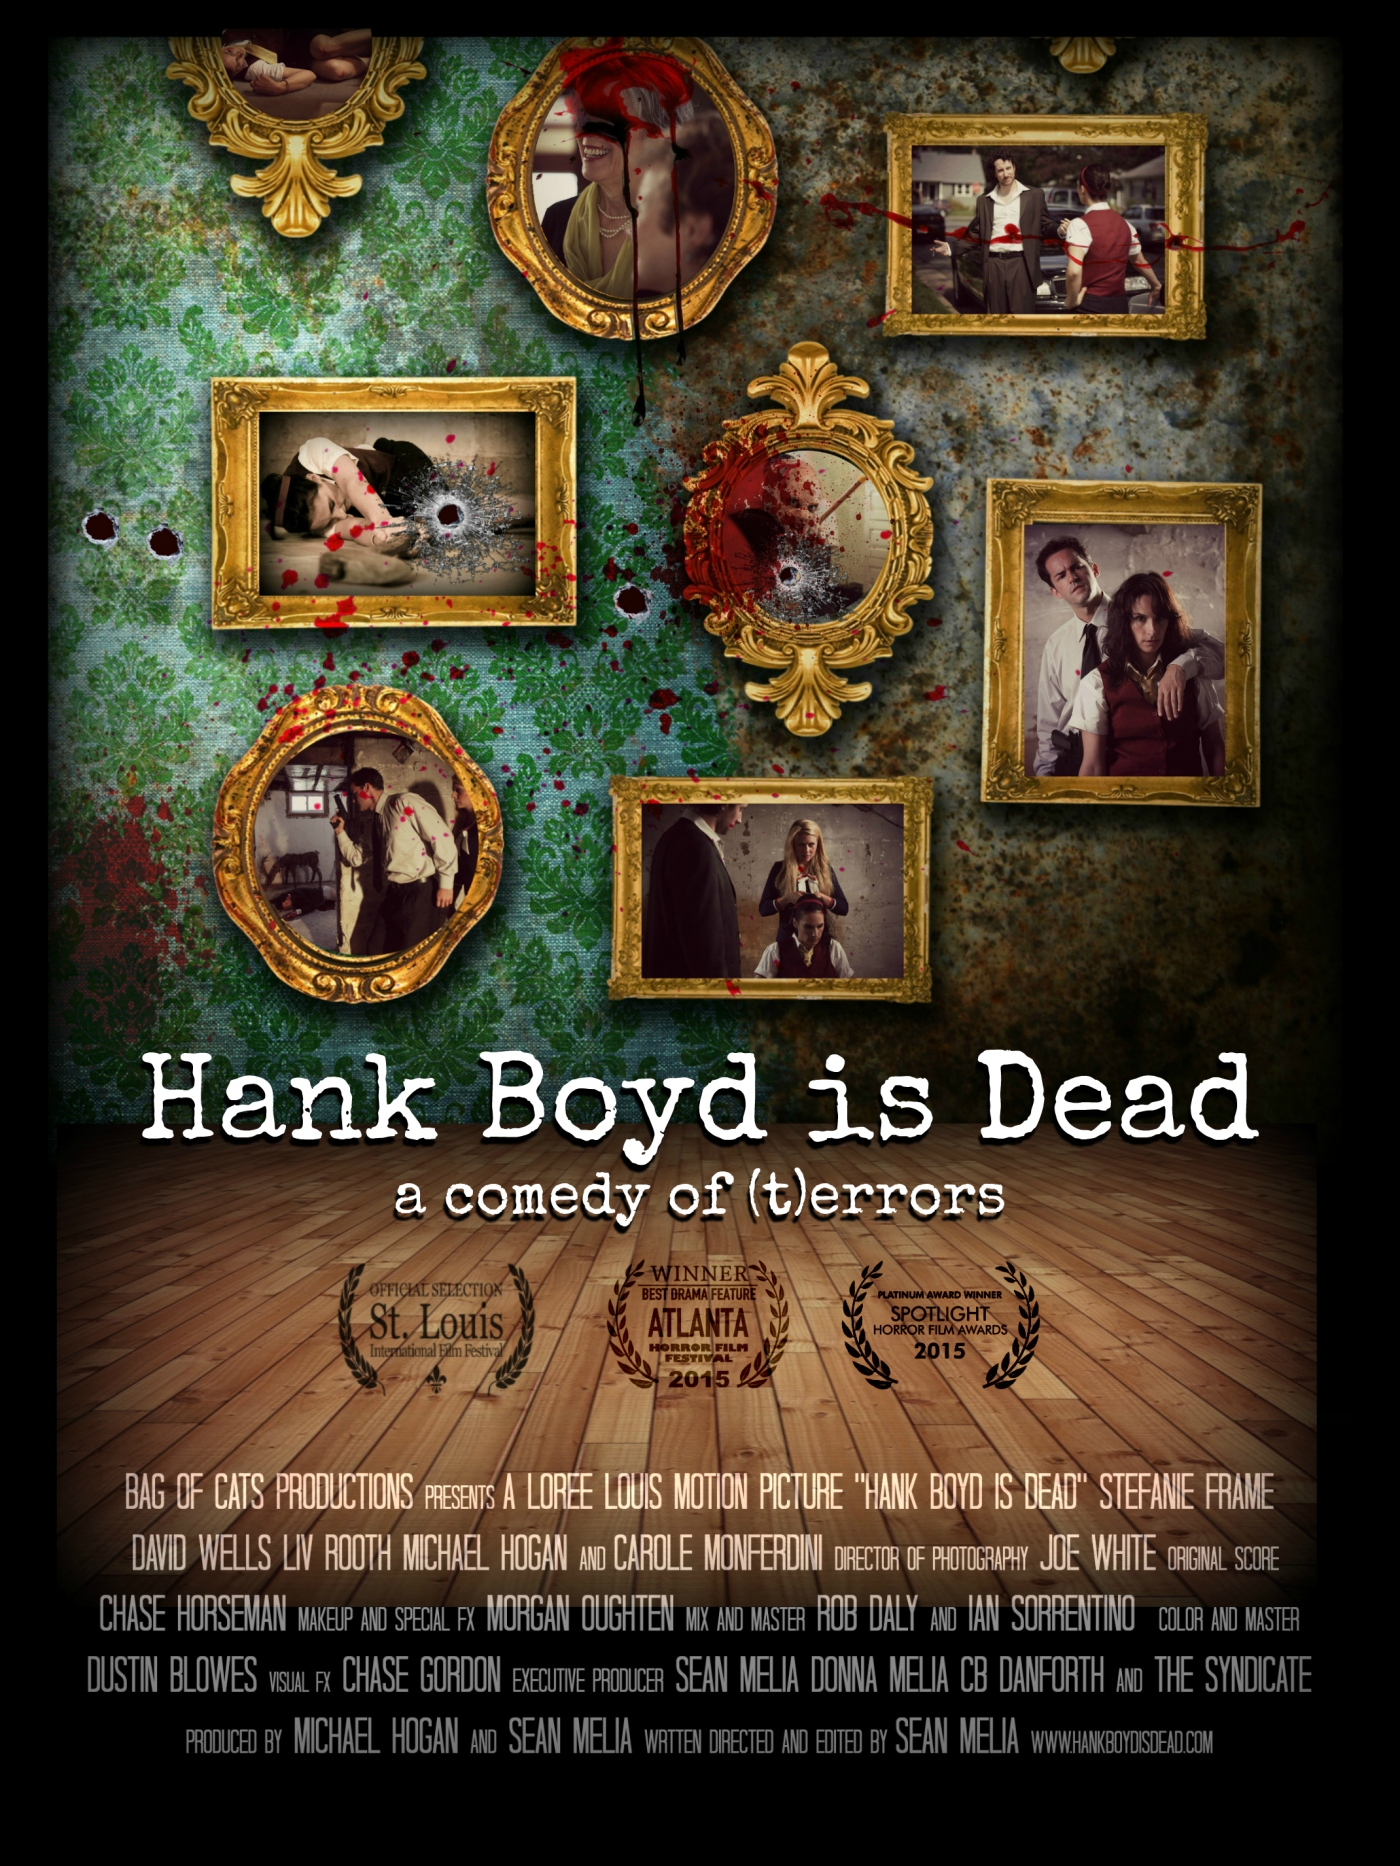 Official theatrical poster for HANK BOYD IS DEAD